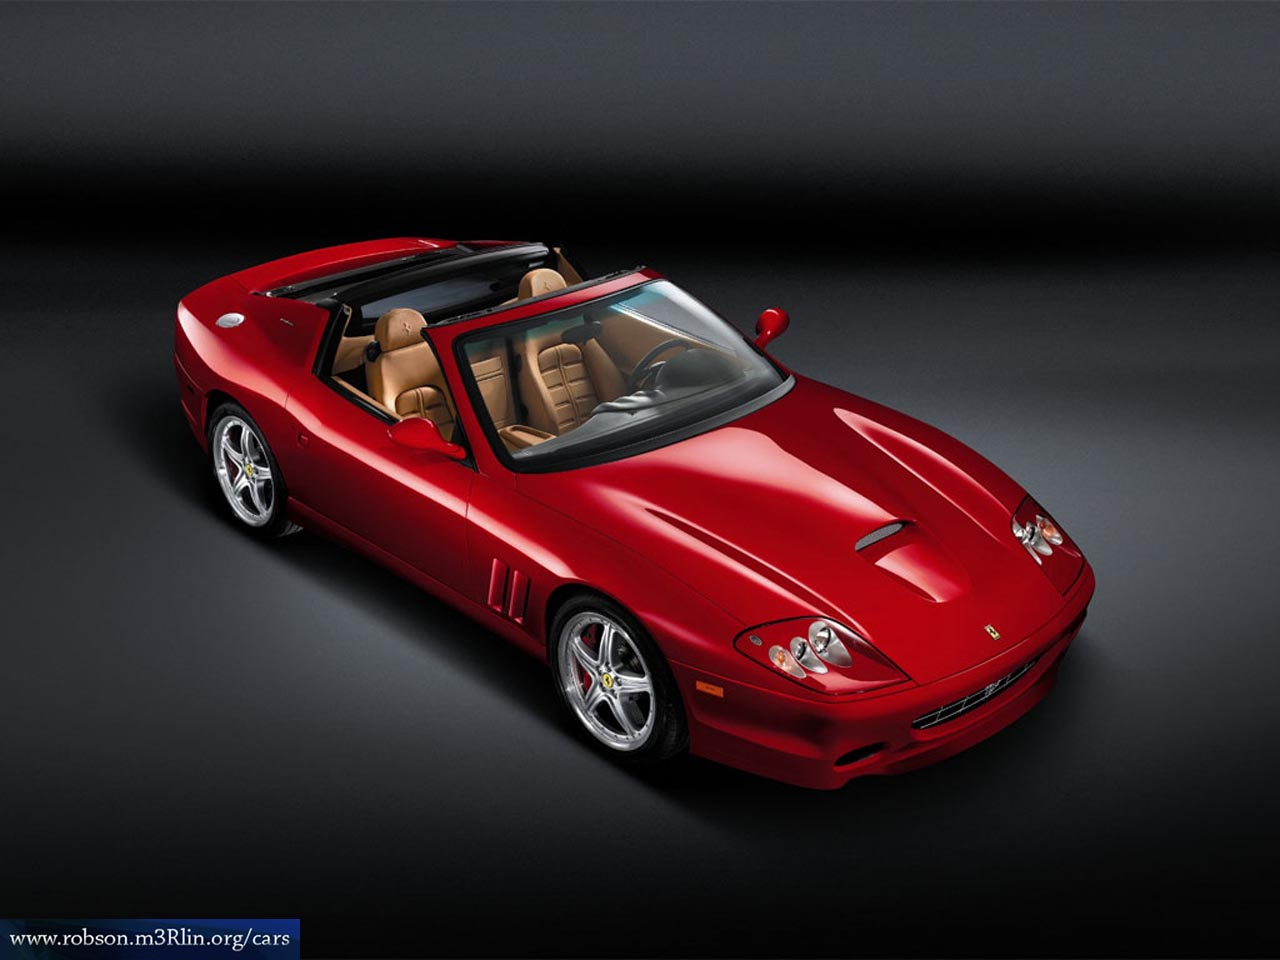 Cars Picture Cars Wallpapers Concept Cars 1280x960